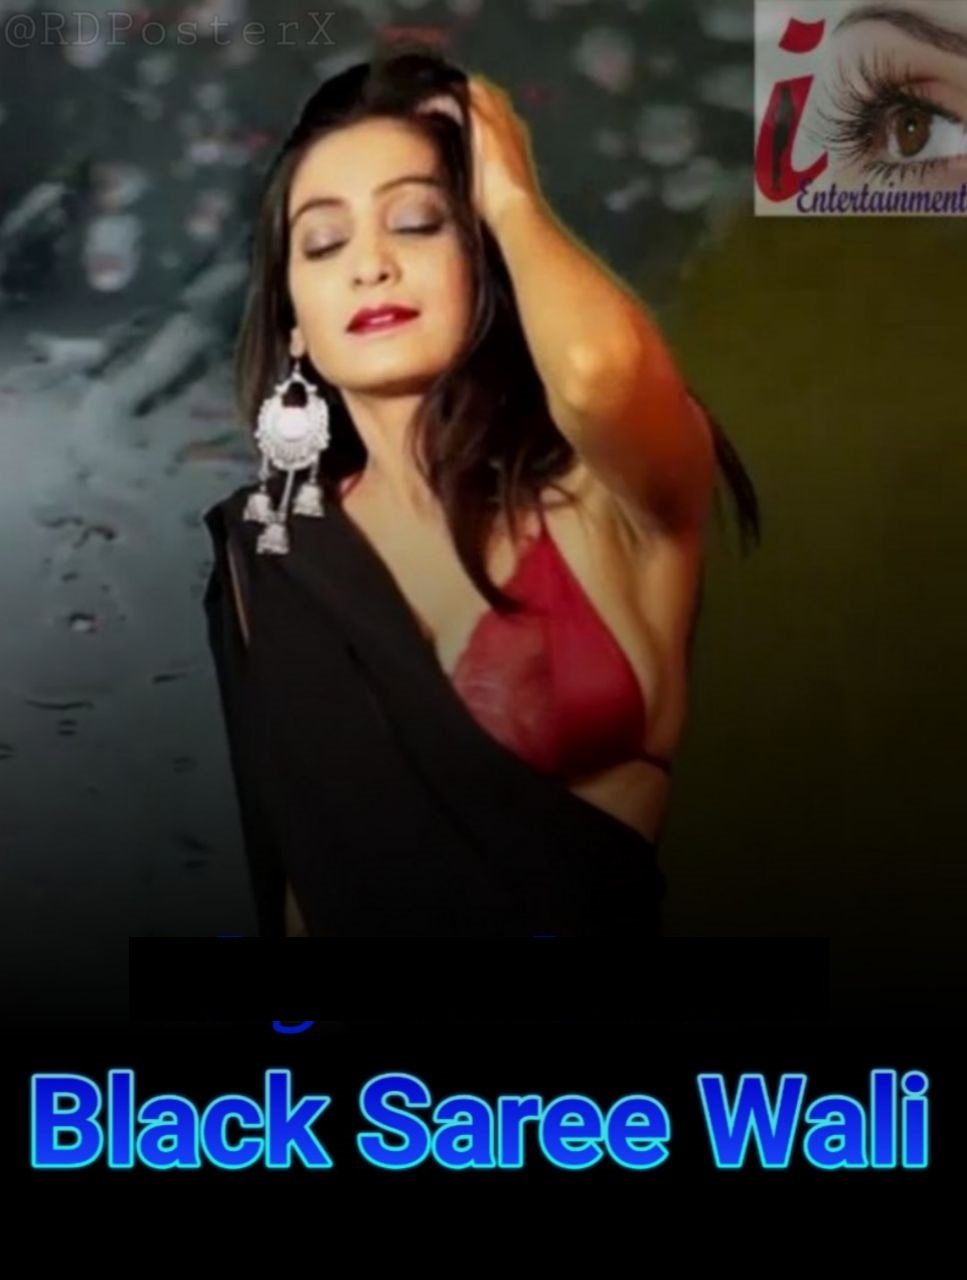 Black Saree Wali 2020 iEntertainment Originals Hindi Video 720p HDRip 100MB